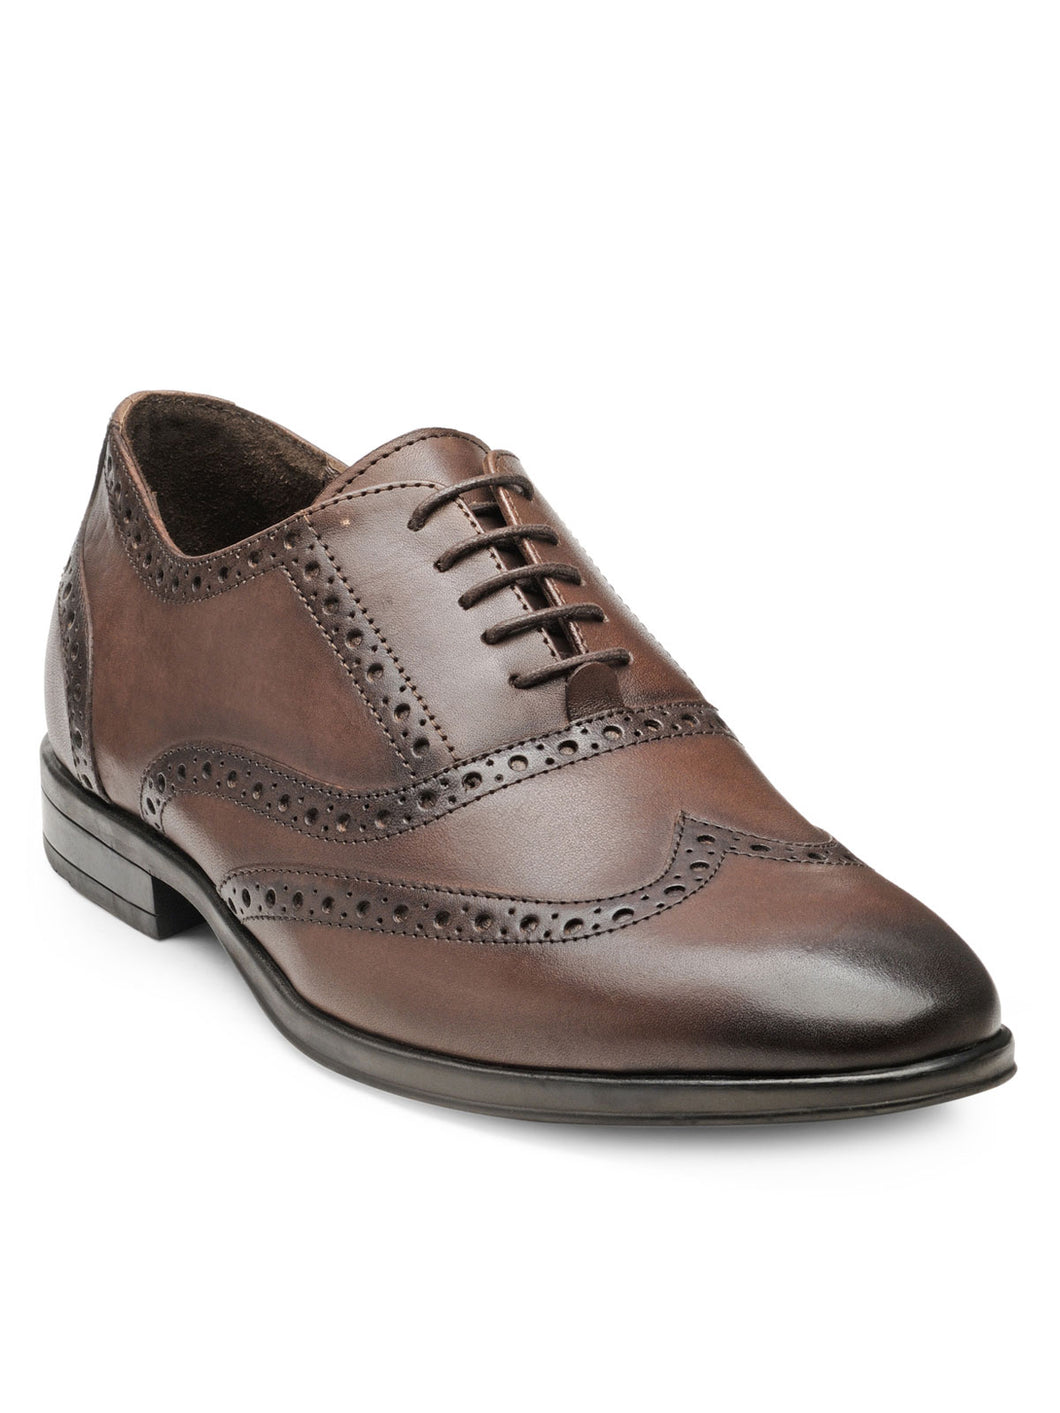 Teakwood Leather Men's Brown Oxford/Brogue Shoes